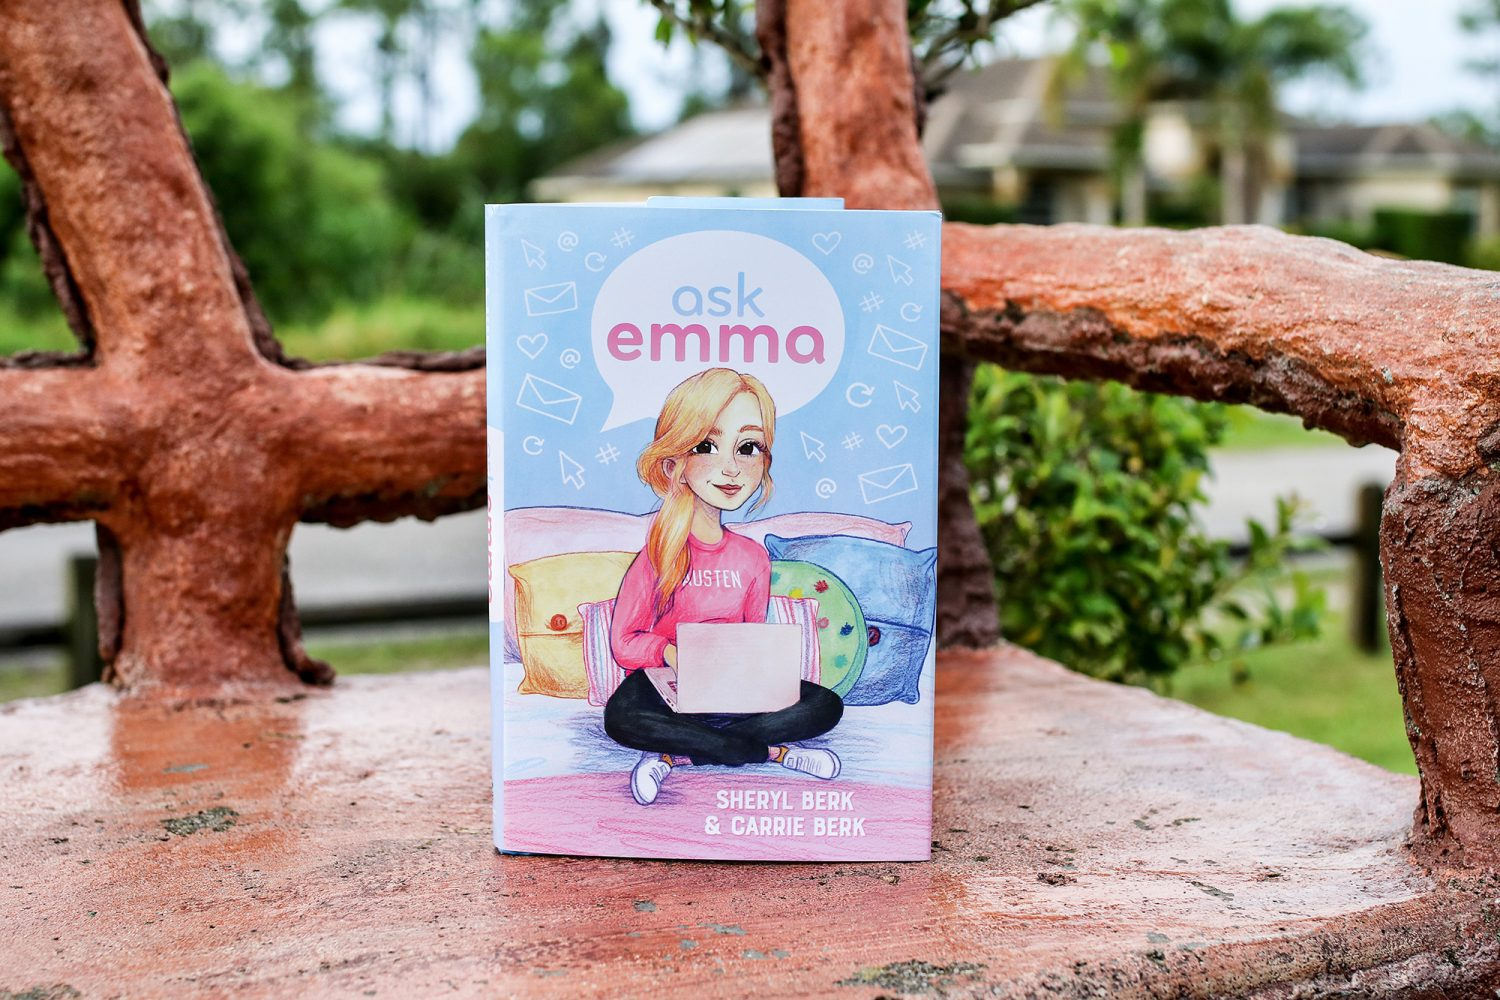 ask emma, bee a reader, Sheryl Berk, Carrie Berk, be brave, be kind, be you, books, middle school, cyber bullying, book review, author interview, good books, kids books, books for kids, new book series, mom blogger, mommy blogger, teen blogger